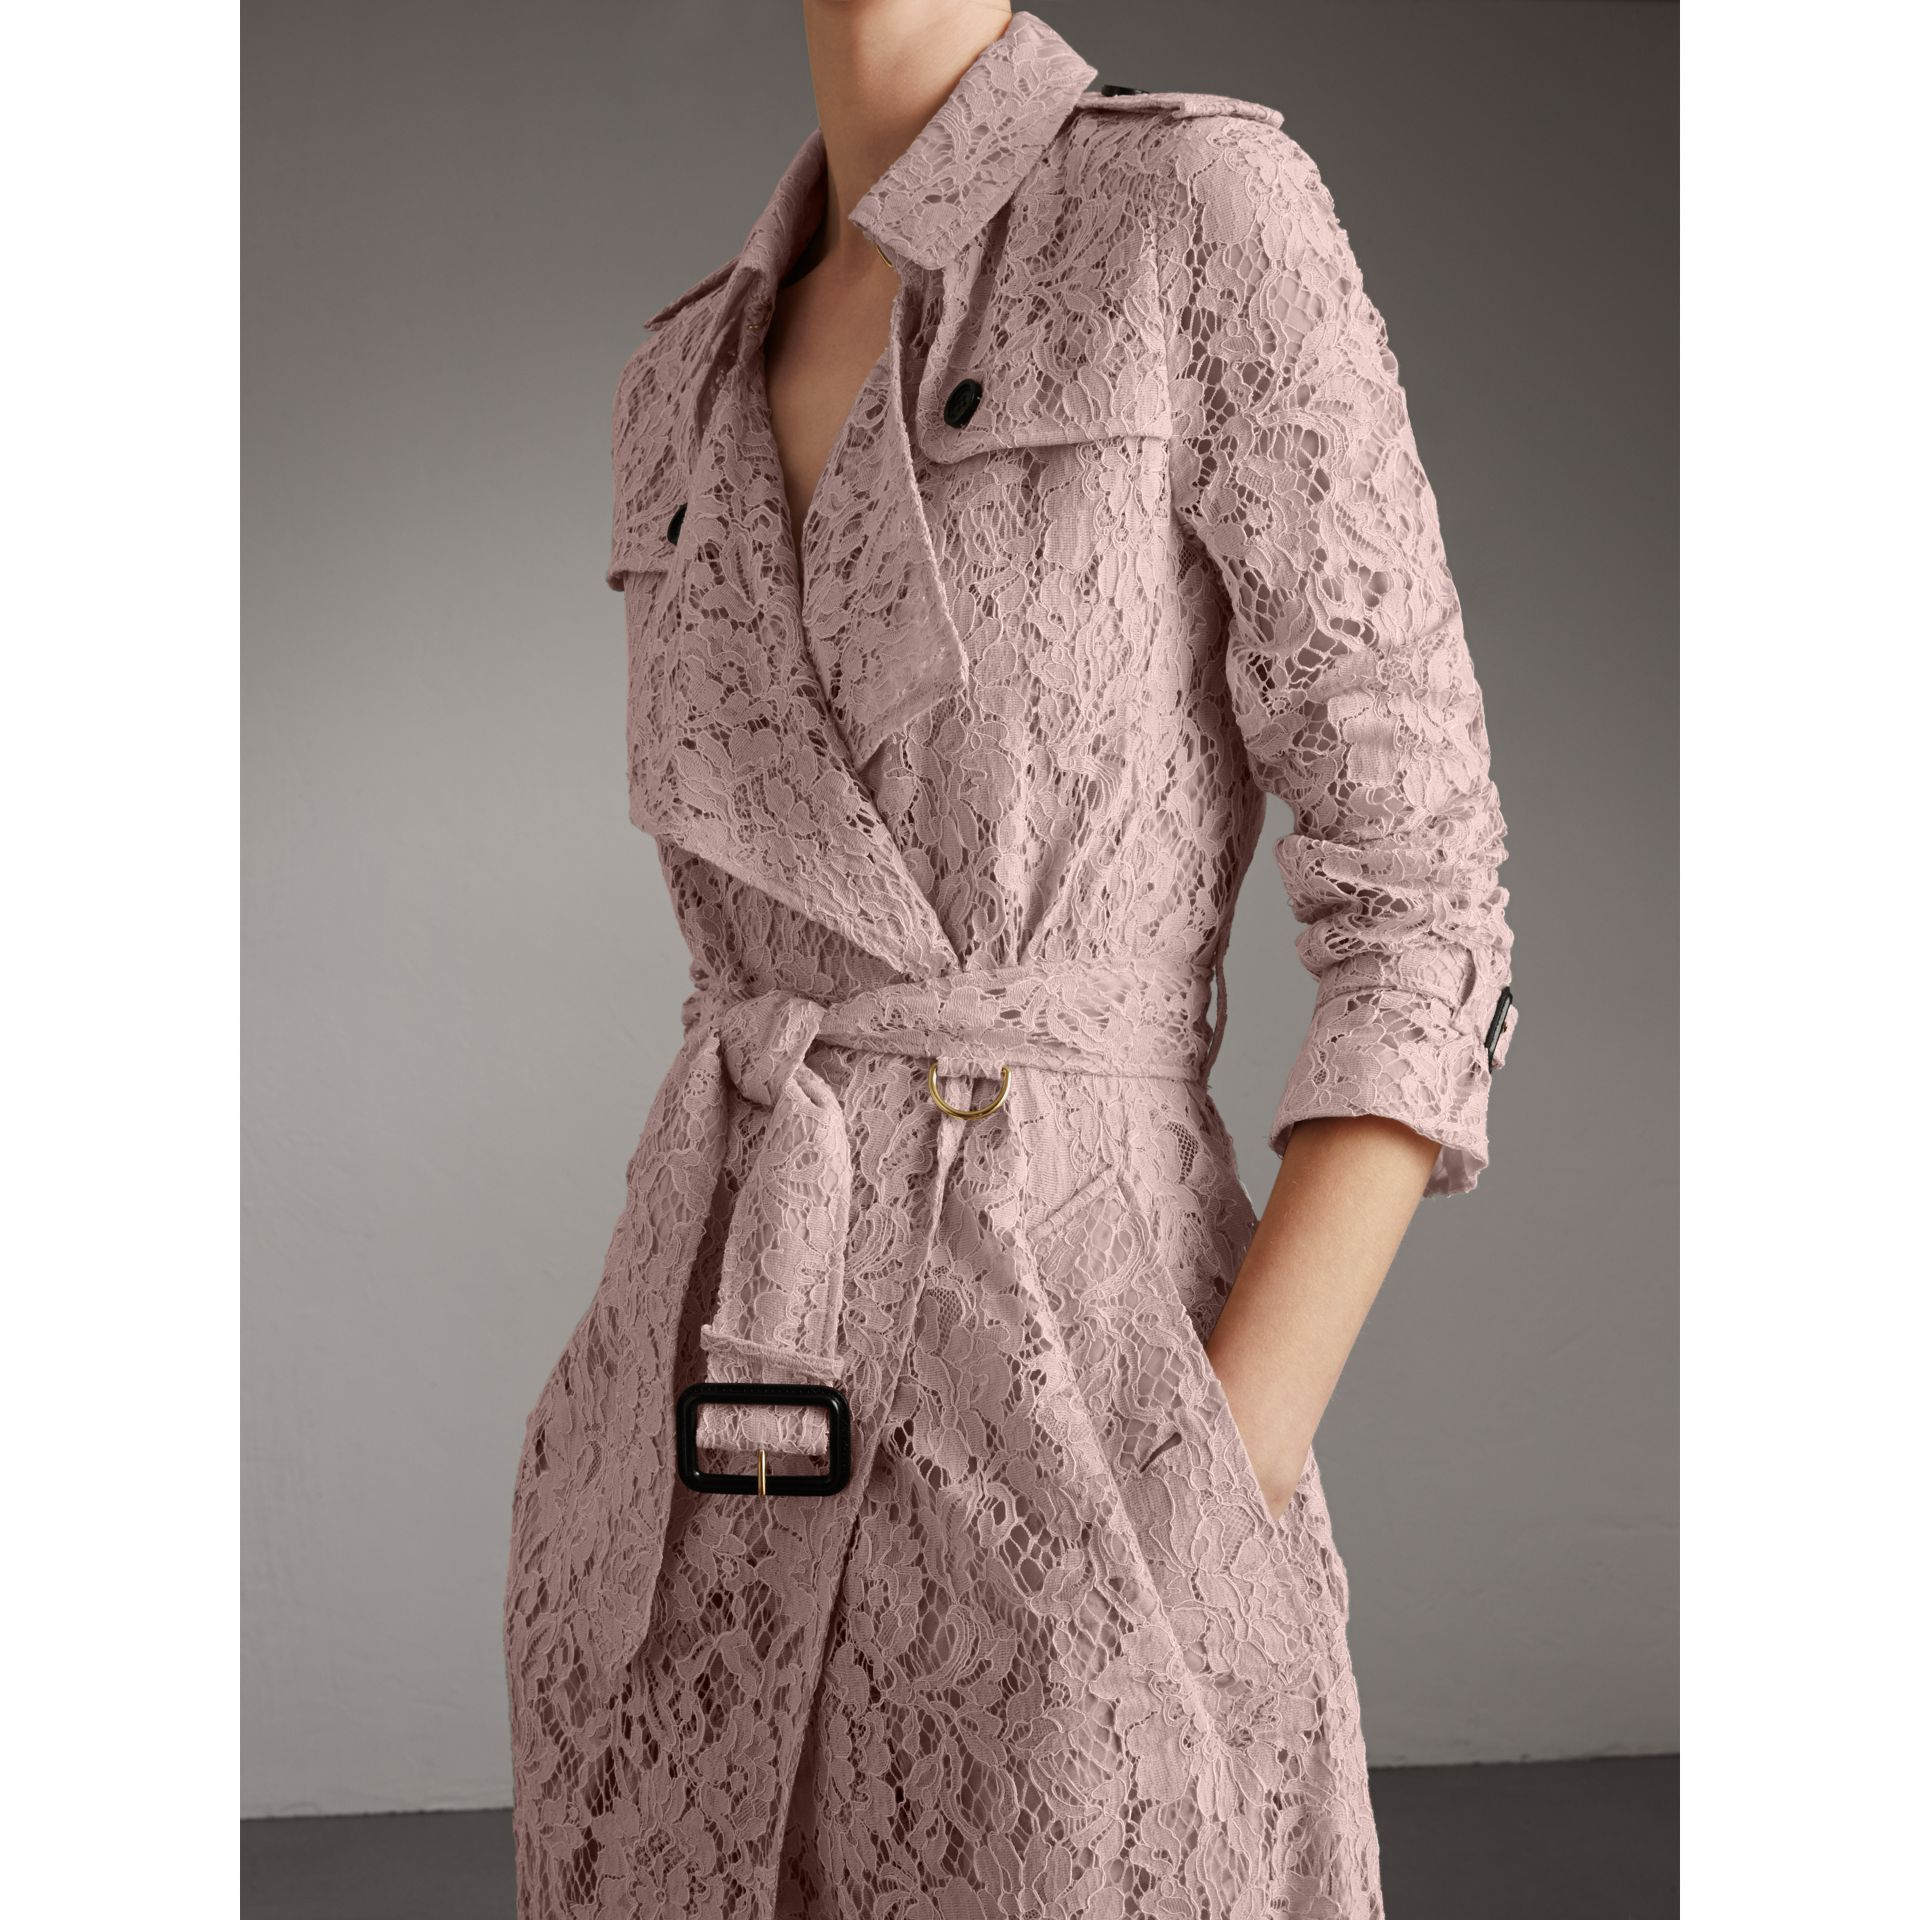 Macramé Lace Wrap Trench Coat in Nude - Women | Burberry United States - gallery image 4